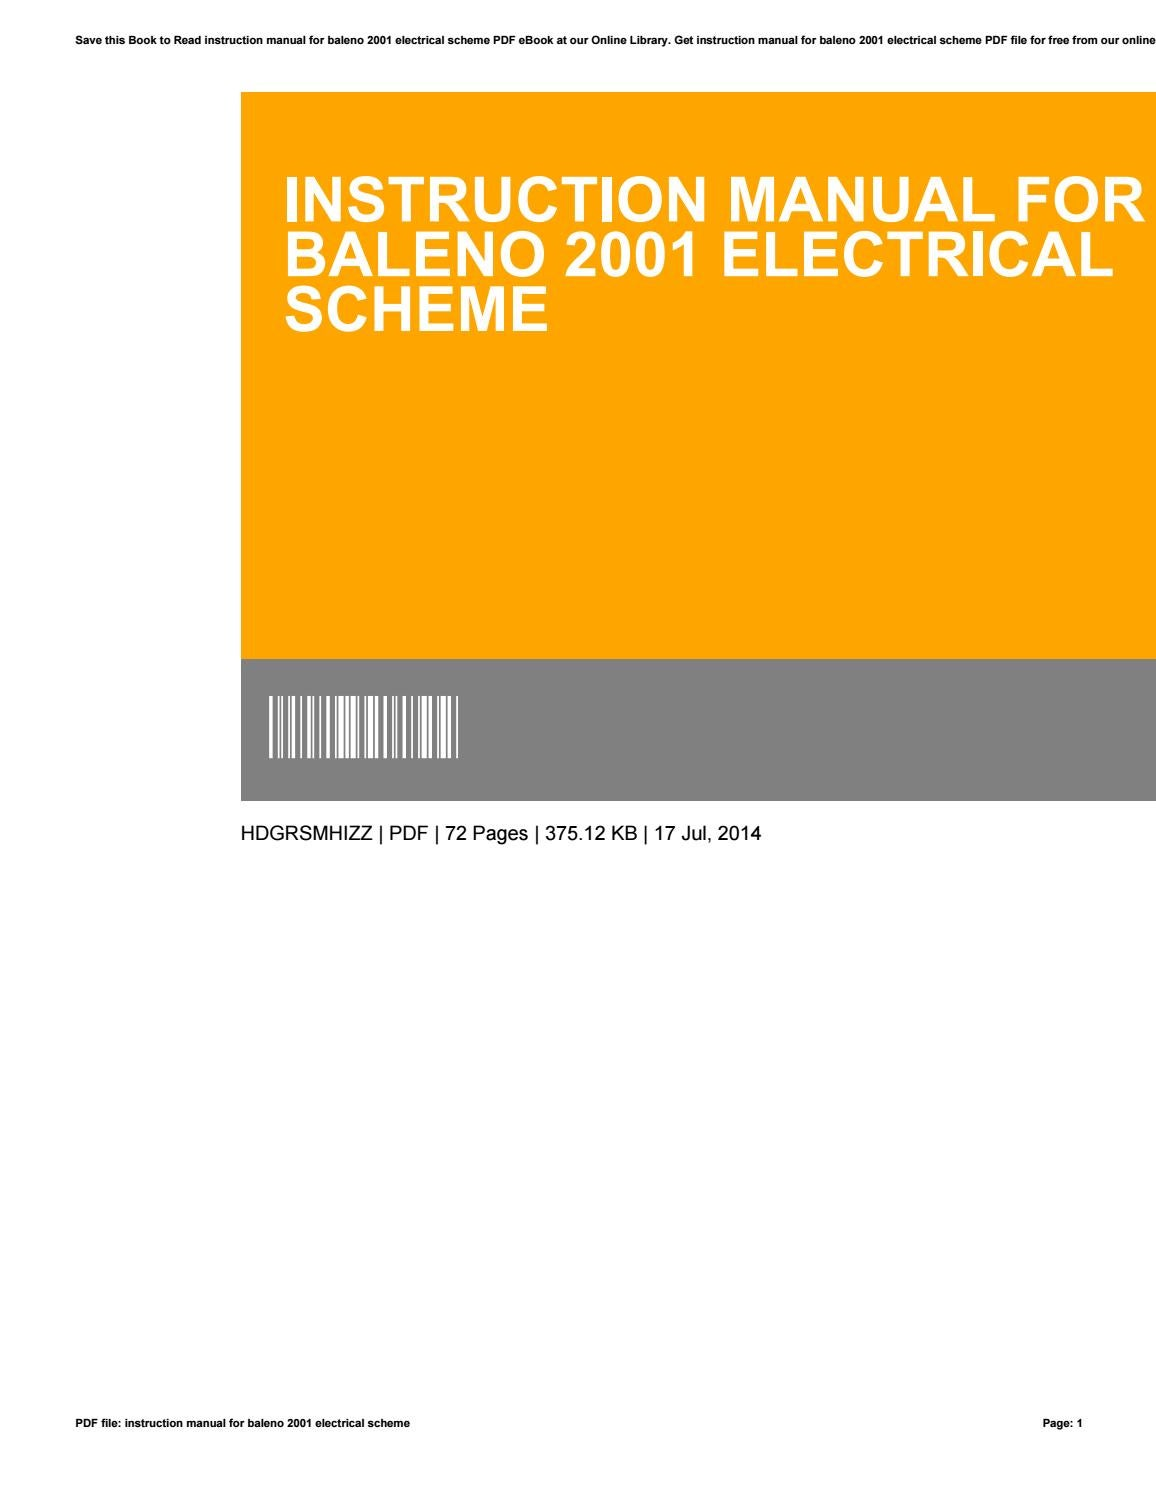 Instruction manual for baleno 2001 electrical scheme by CynthiaLewis2154 -  issuu